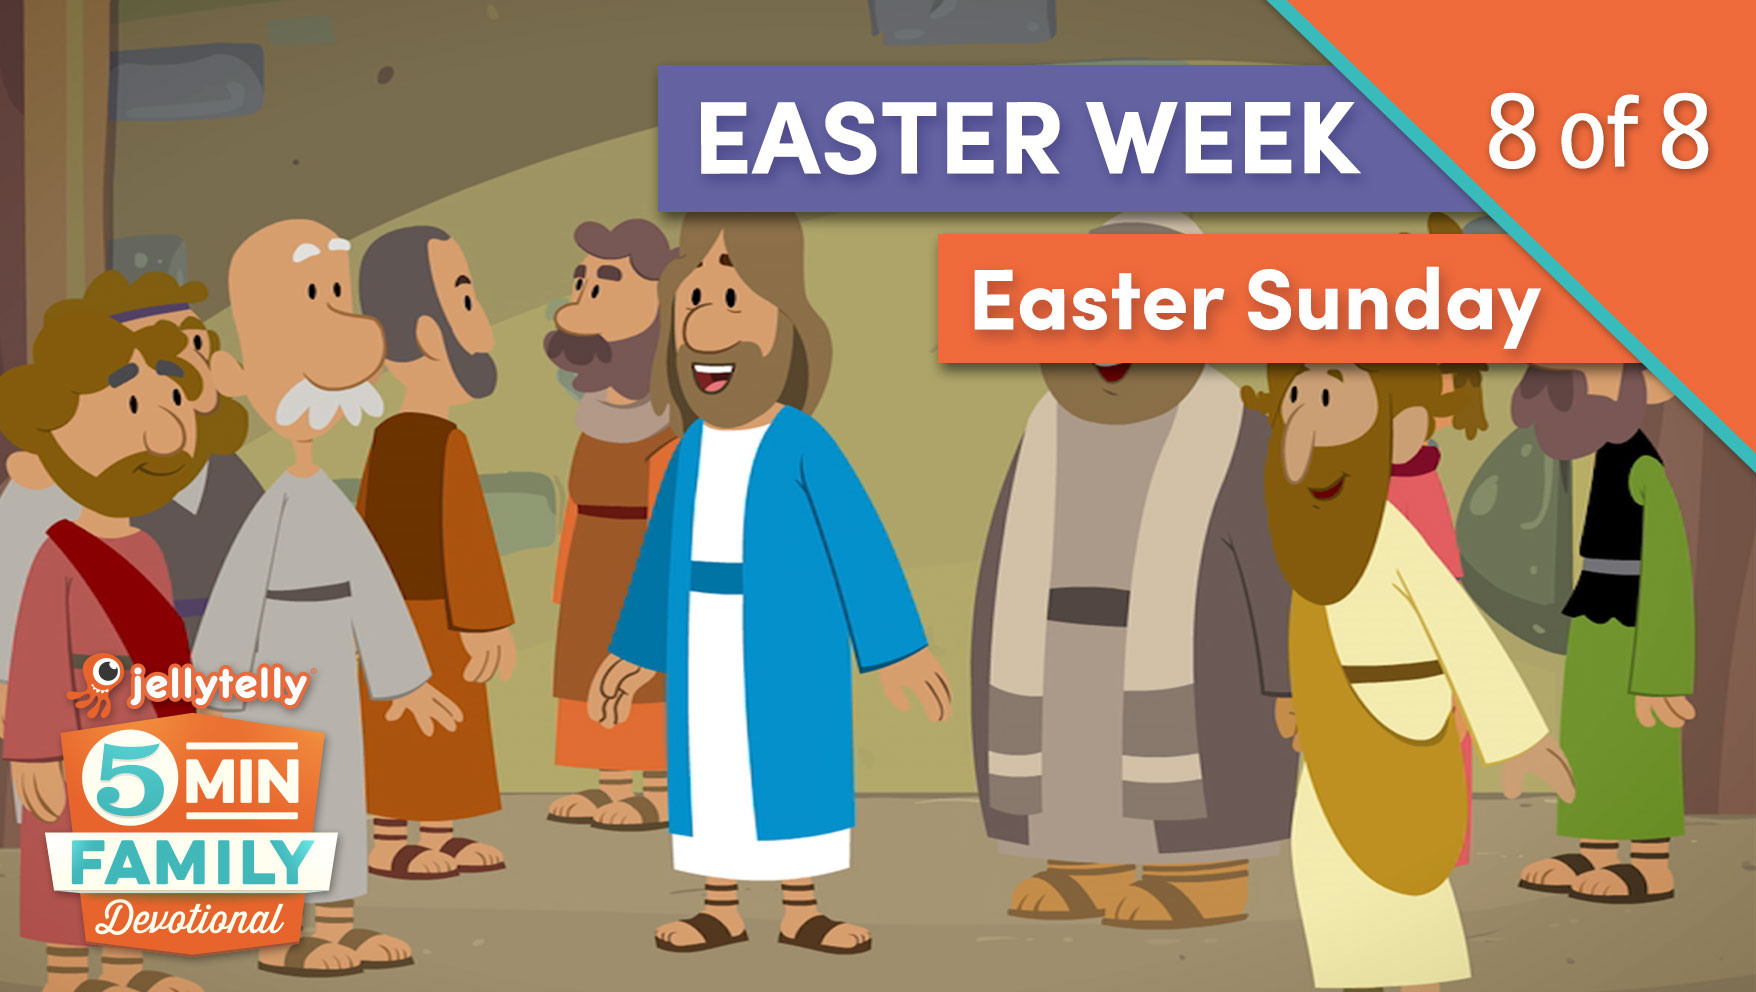 Easter Sunday - Easter Week 5 Minute Family Devotional